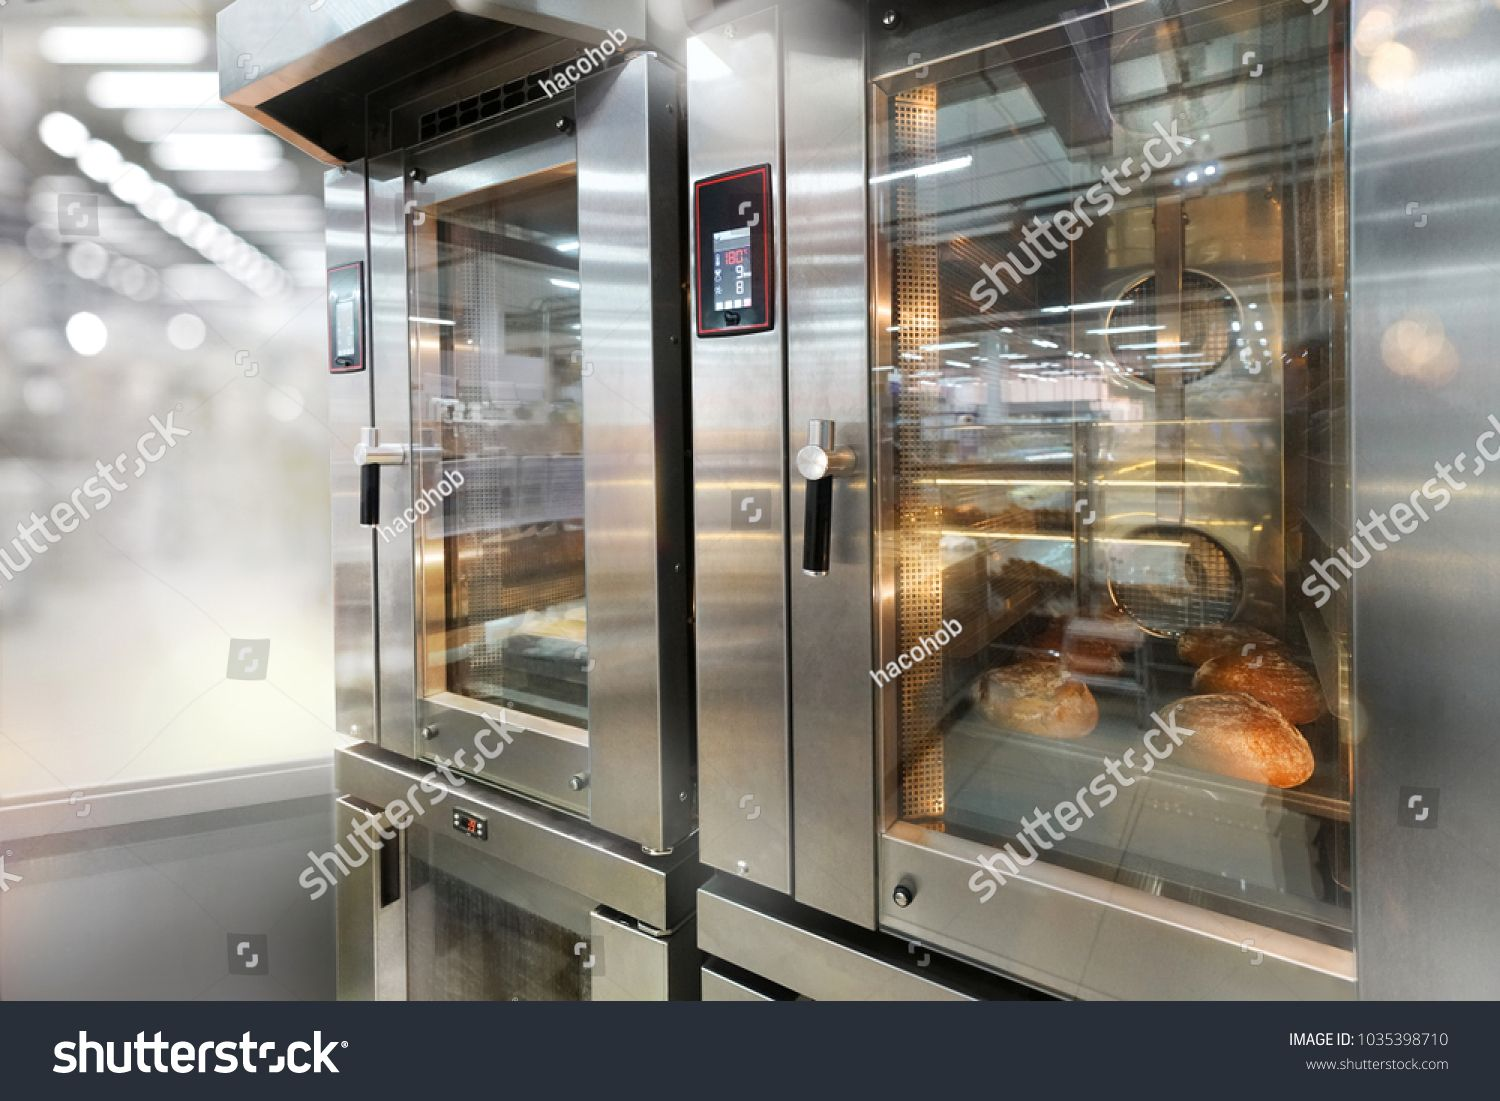 Commercial Bread Ovens With Glass Doors Royalty Free Image Photo In 2020 Bread Oven Glass Door Commercial Ovens